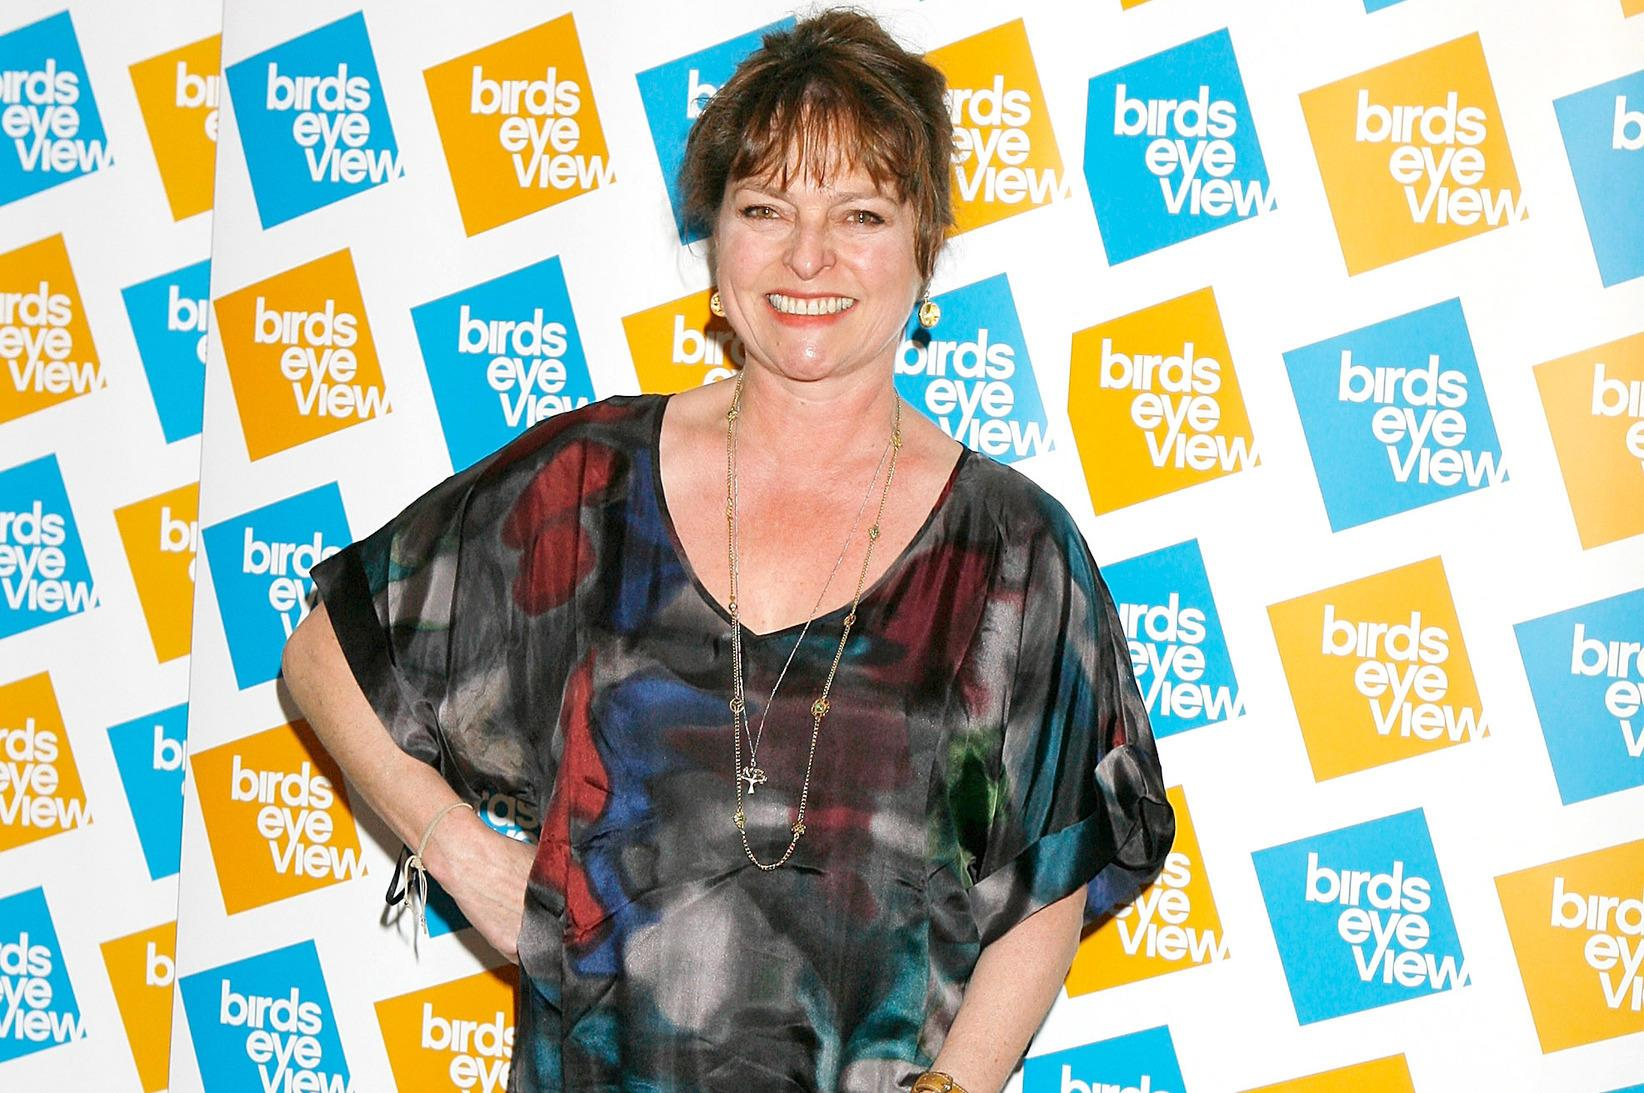 """<p>""""I am an unashamed spender,"""" former Blue Peter presenter Janet Ellis told <a href=""""http://www.telegraph.co.uk/finance/personalfinance/fameandfortune/9667907/Janet-Ellis-I-am-an-unashamed-spender.html"""" target=""""_blank"""">The Telegraph</a>. """"I love shopping and I love the idea of a bargain and will shop online or in stores. We have a good lifestyle and don't deprive ourselves of good holidays. I have in the past maxed out on credit cards and store cards, which I wouldn't advise anyone doing. It was fun at the time, but in terms of how much you have to repay, it is ludicrous how much they charge.""""</p>  <p><strong>Advice from Jo Gornitzki, a spokesperson for MoneySavingExpert.com: </strong></p>  <p>""""As any girl knows there's nothing better than a bit of retail therapy every now and then. But the former Blue Peter presenter should be wary of maxing out on her cards. Credit cards are great - used in the right way. Used wrongly and they can end up costing you a fortune and in a mess that sticky back plastic just can't fix.""""</p>  <p></p>"""